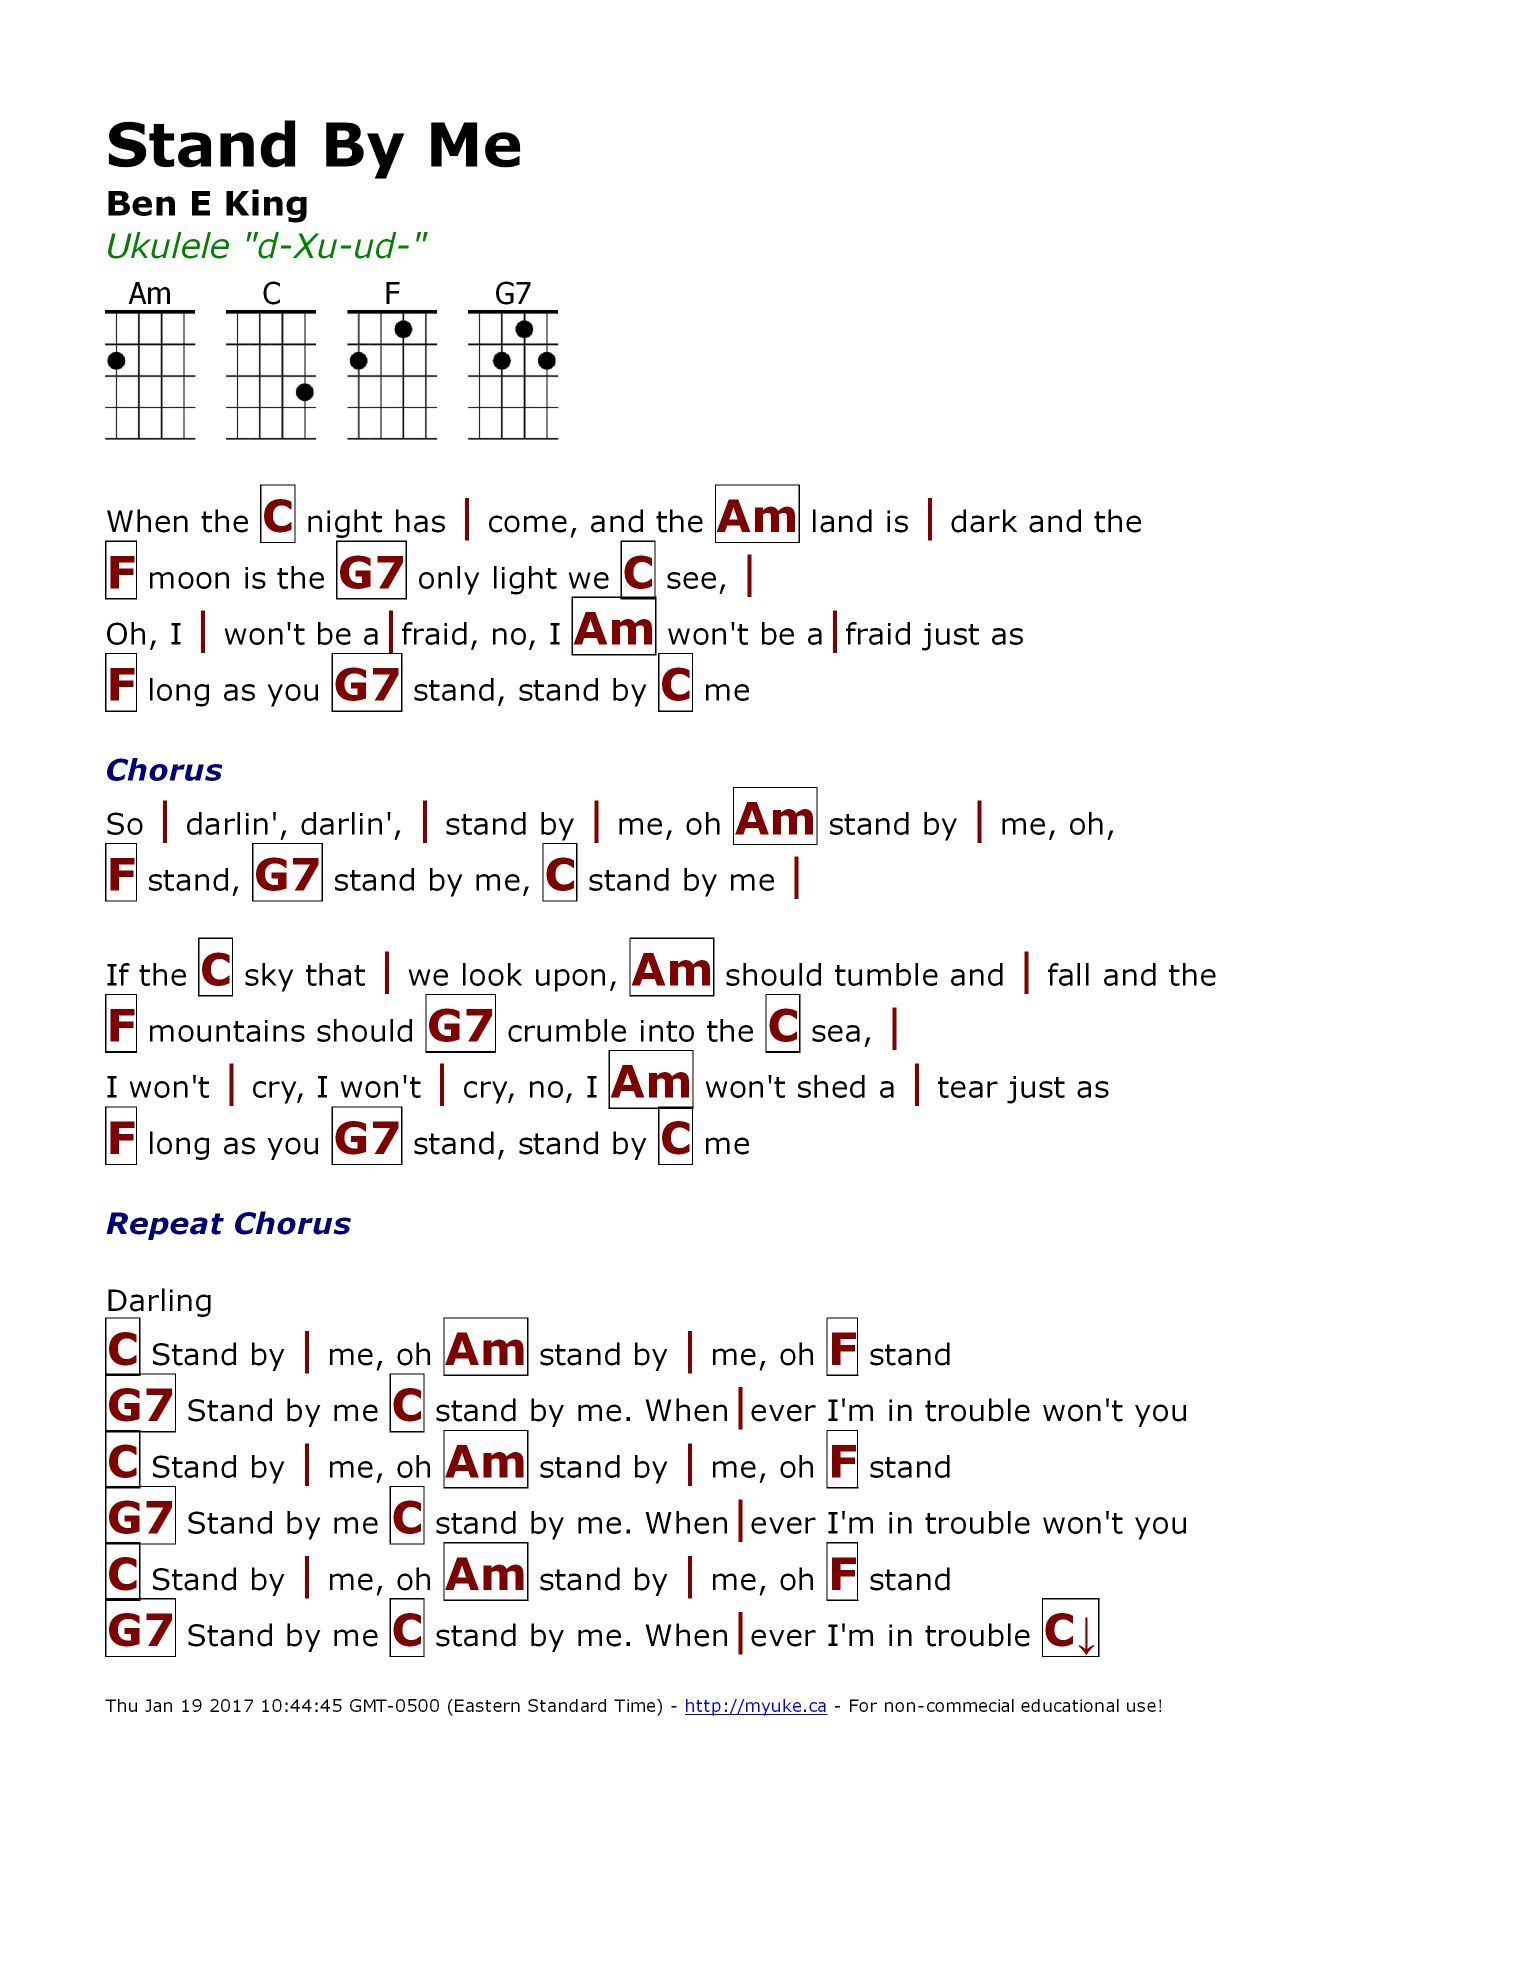 Stand by me ben e king httpmyuke songs pinterest guitar chord chart hexwebz Image collections